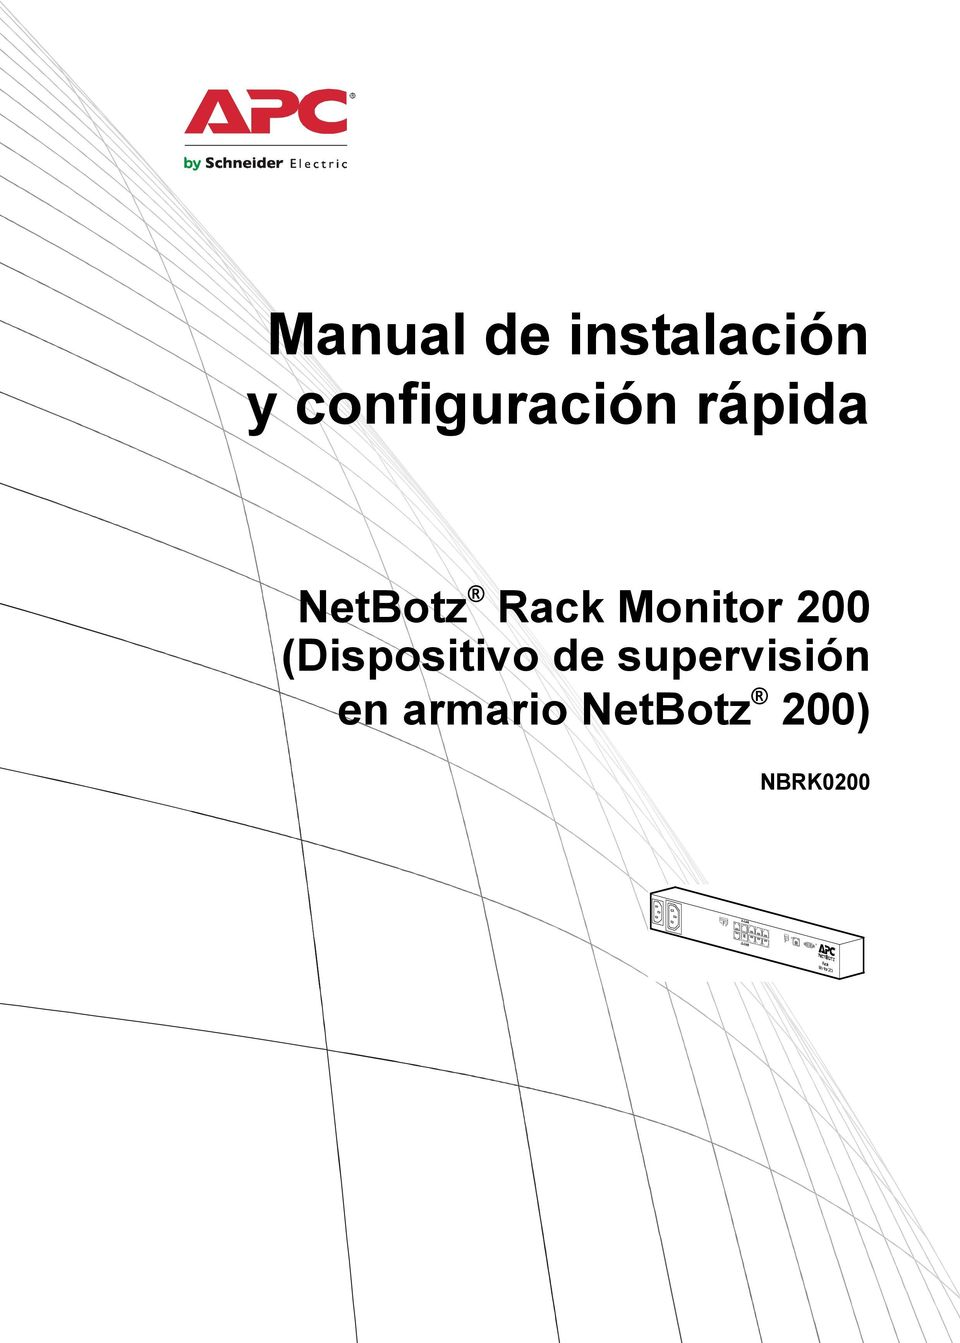 Rack Monitor 200 (Dispositivo de